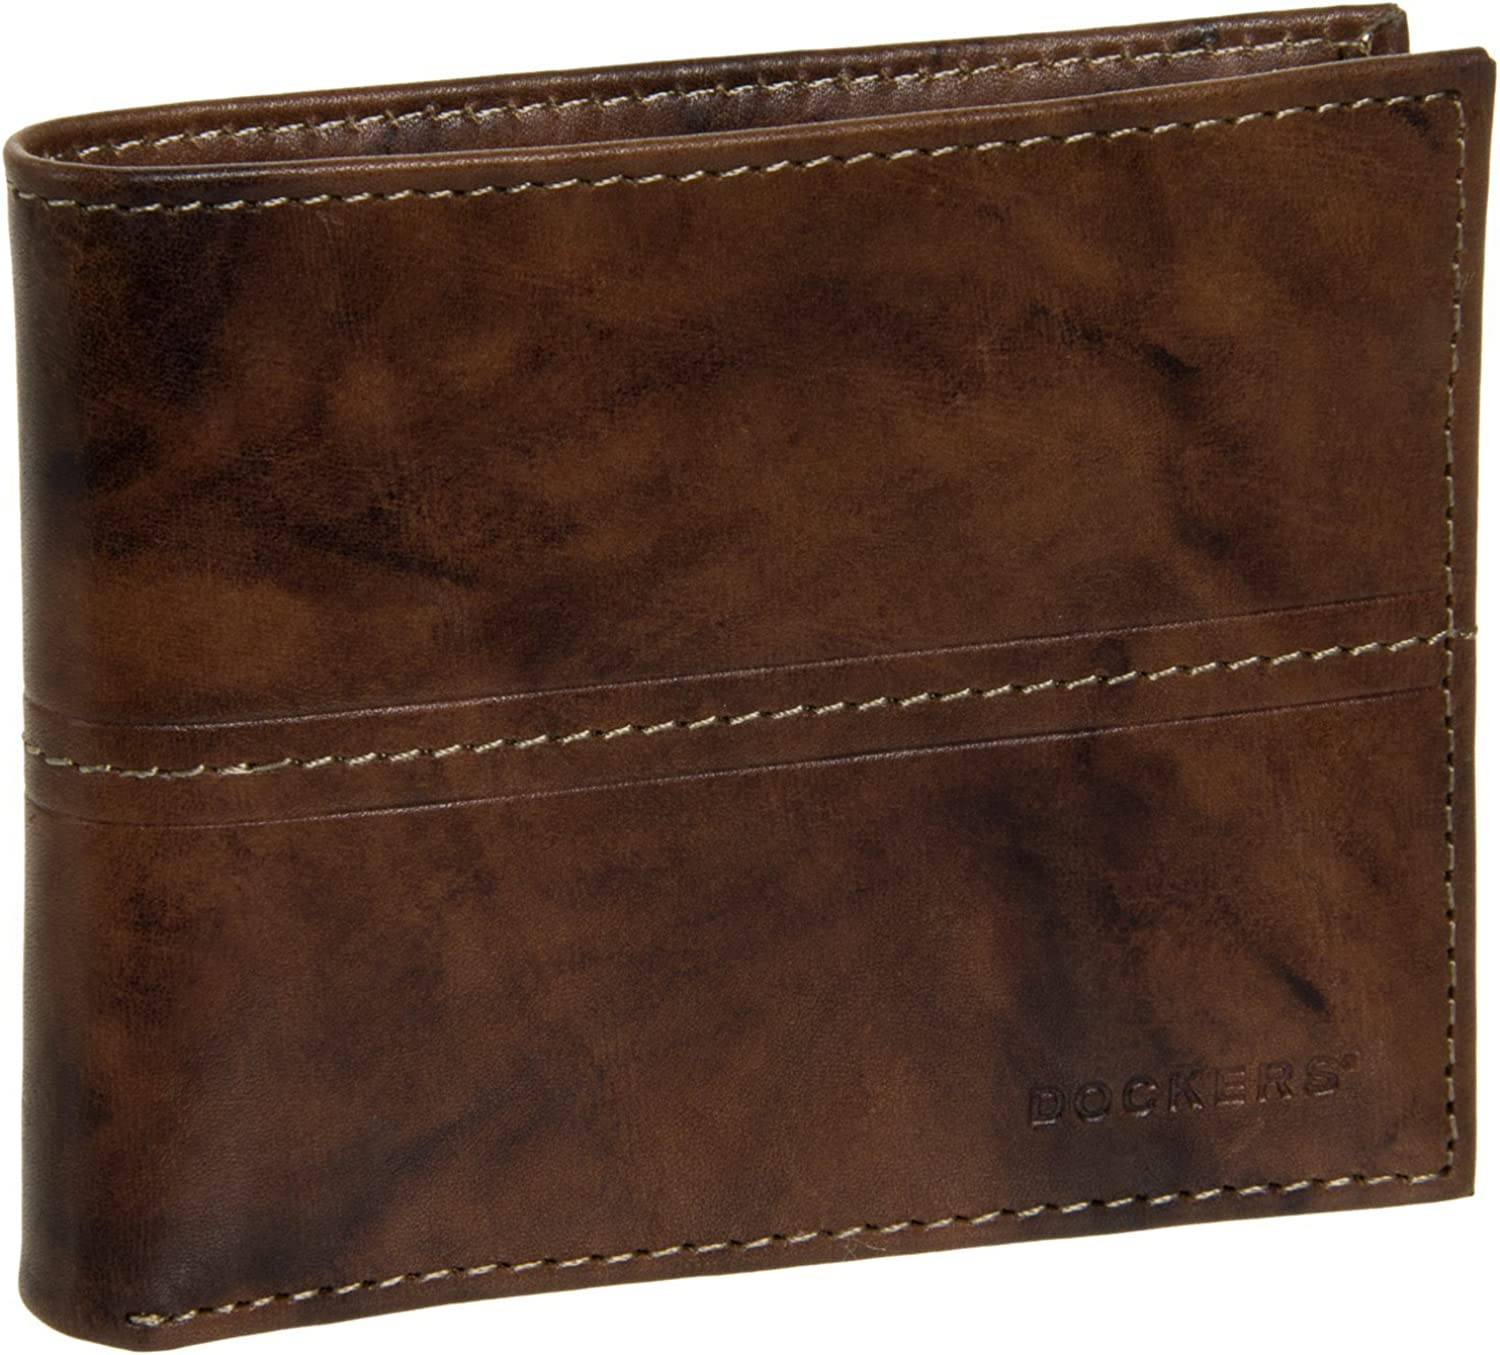 Non-Branded Mens Brown Leather Pocketmate Wallet w// Pull Out ID